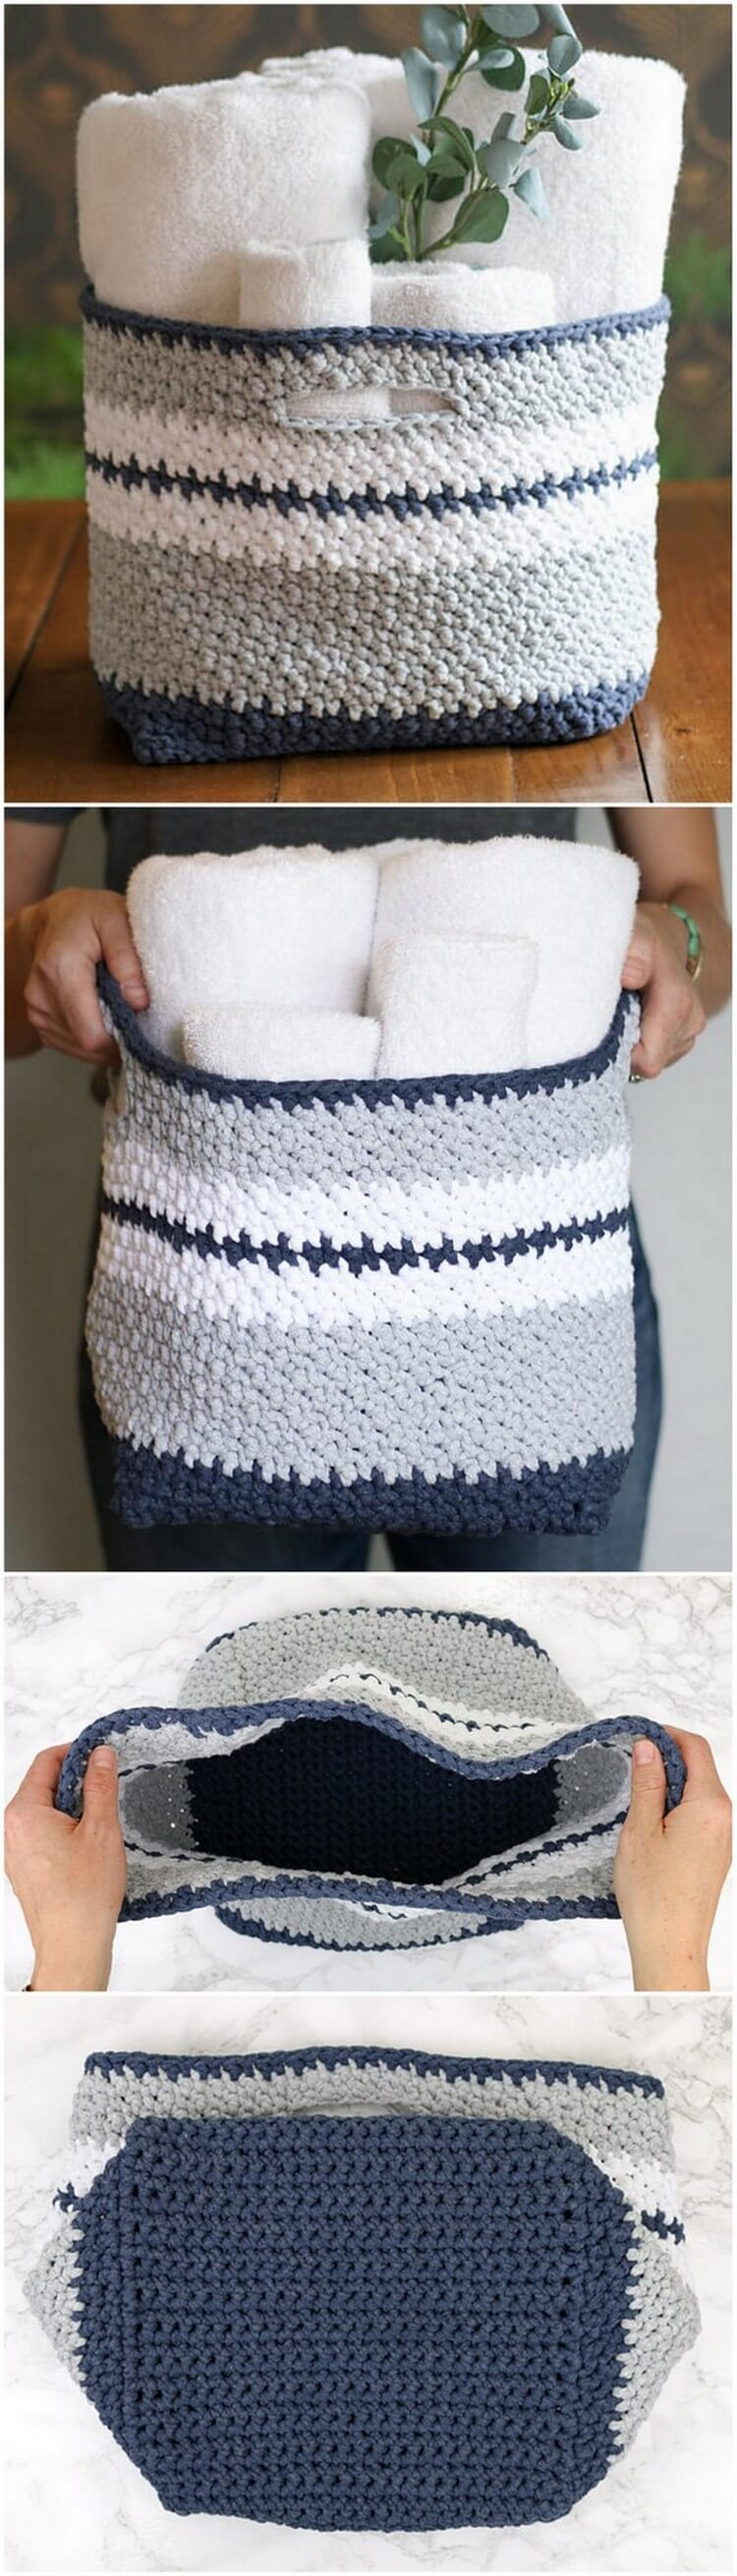 Crochet Basket Pattern (10)